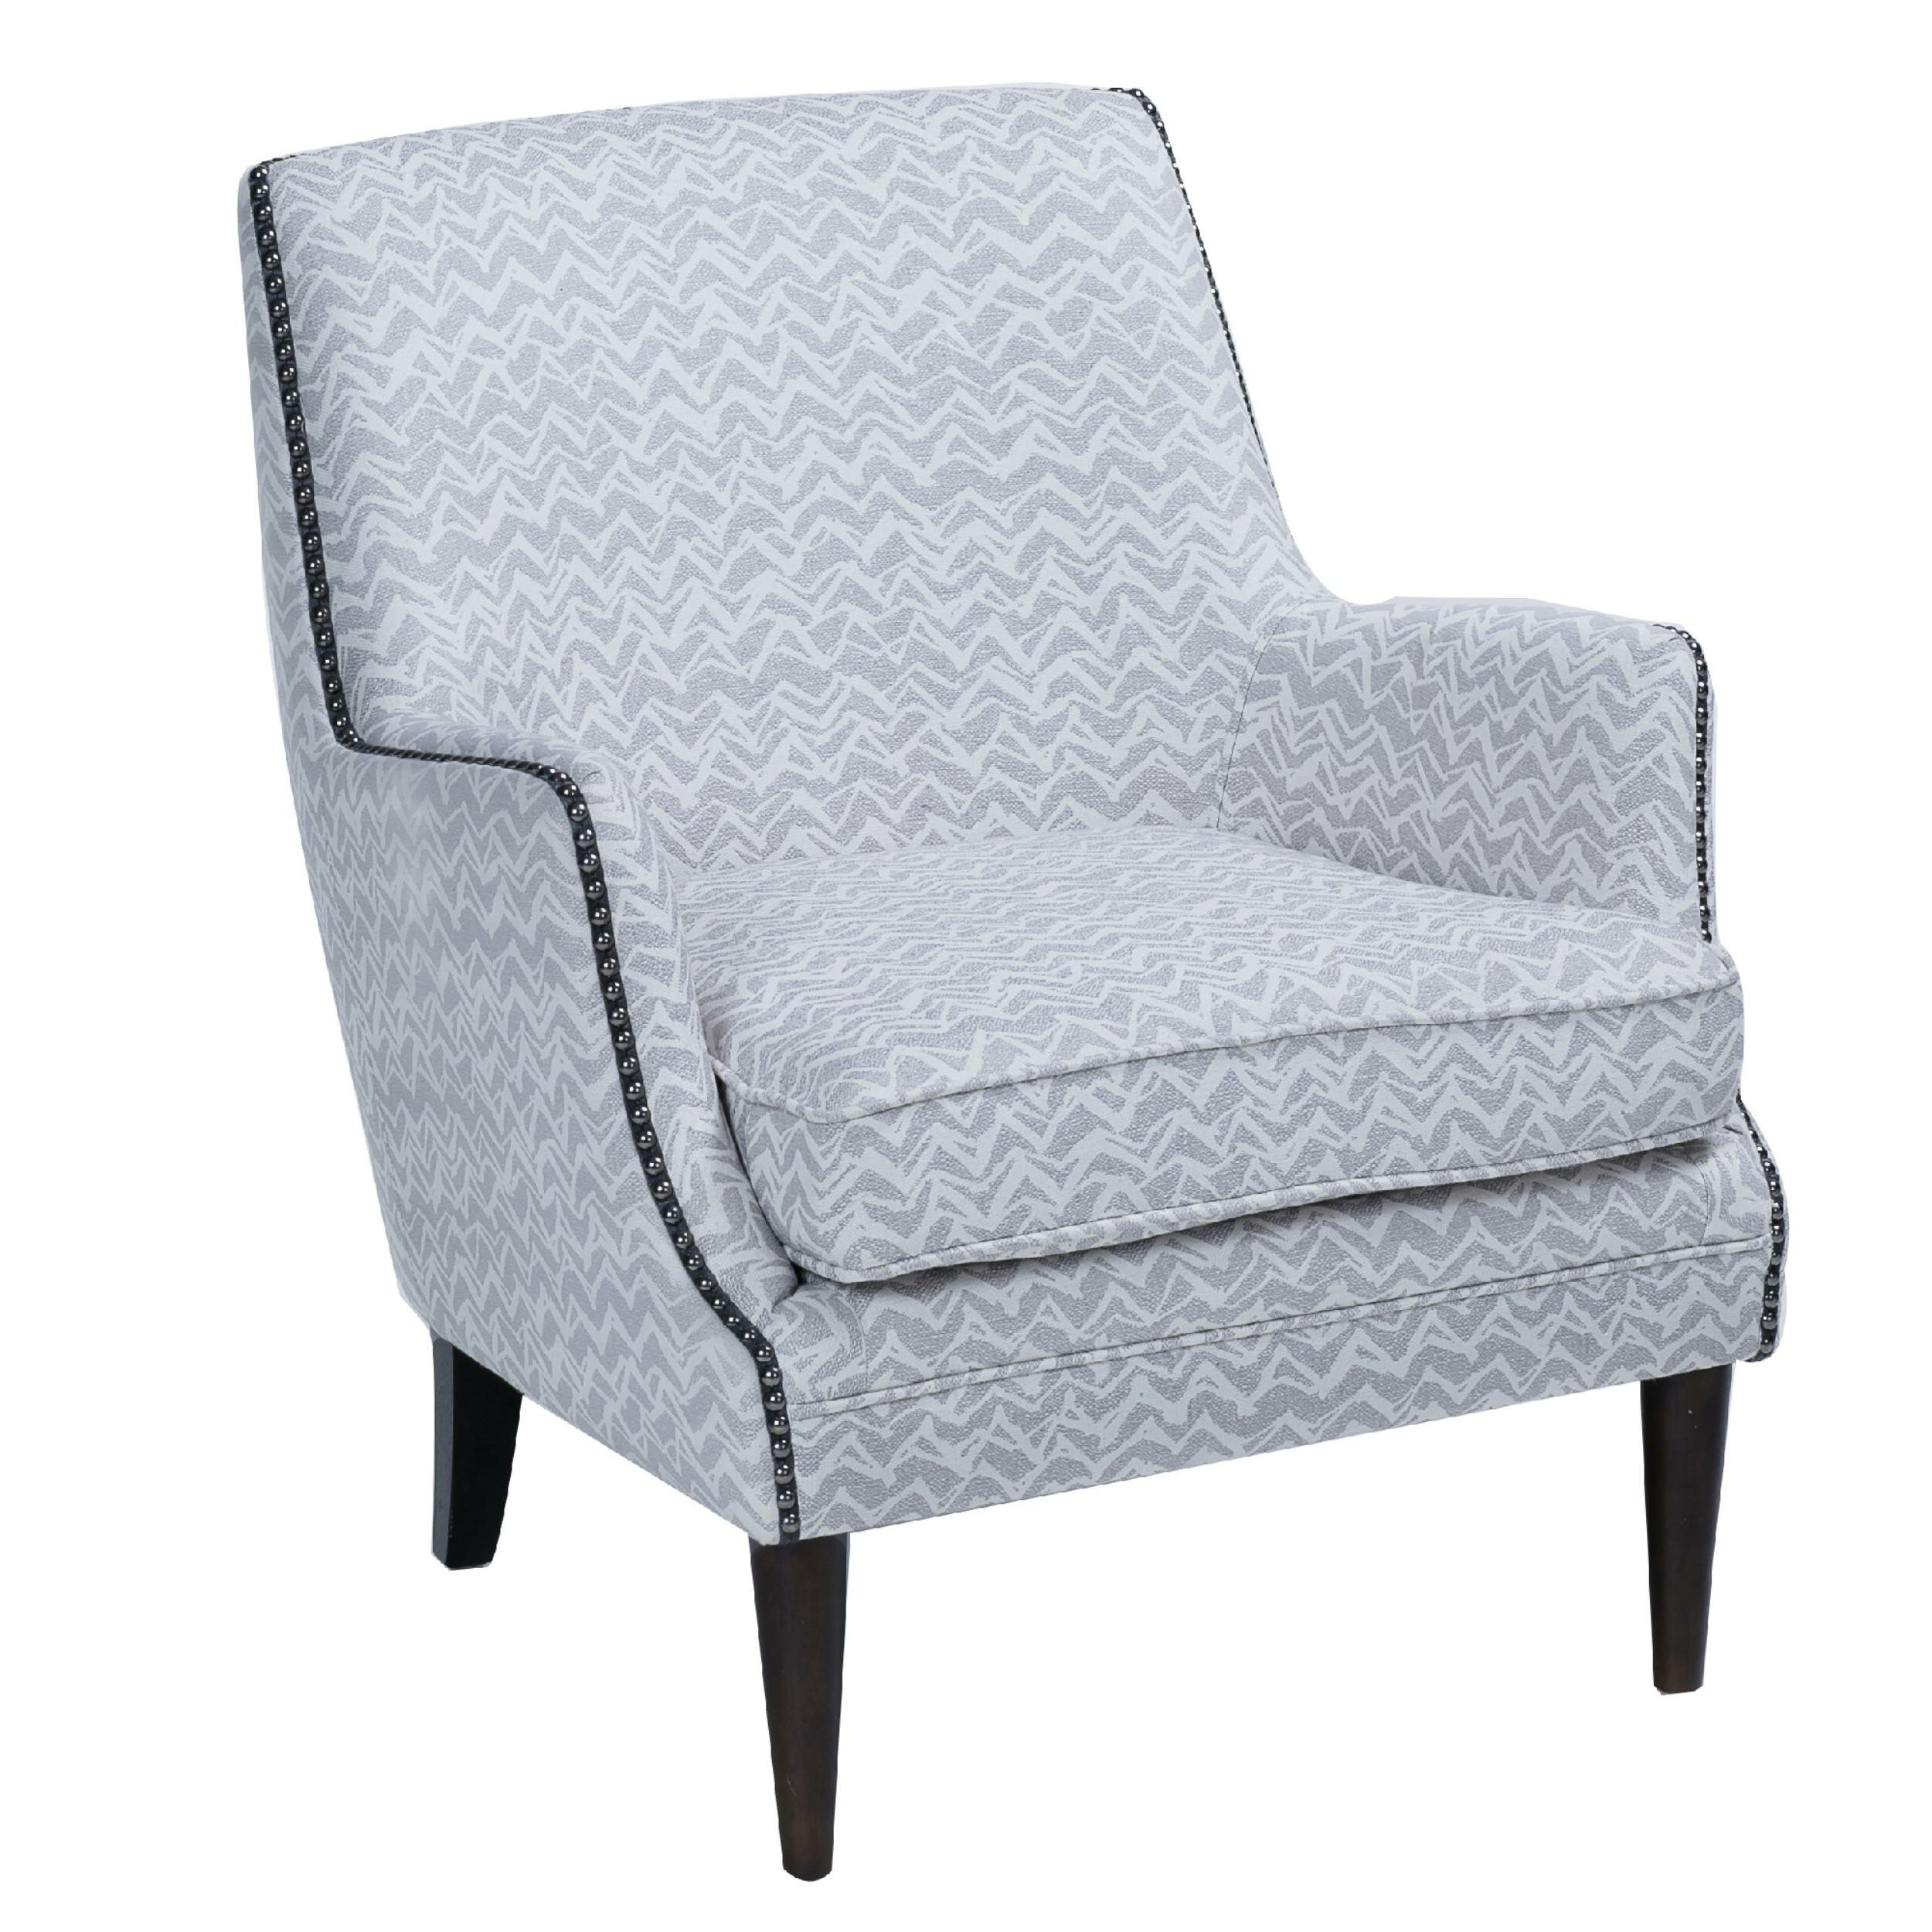 Sensational High Back Accent Chair With Patterned Fabric Upholstery Grey And Brown Ibusinesslaw Wood Chair Design Ideas Ibusinesslaworg